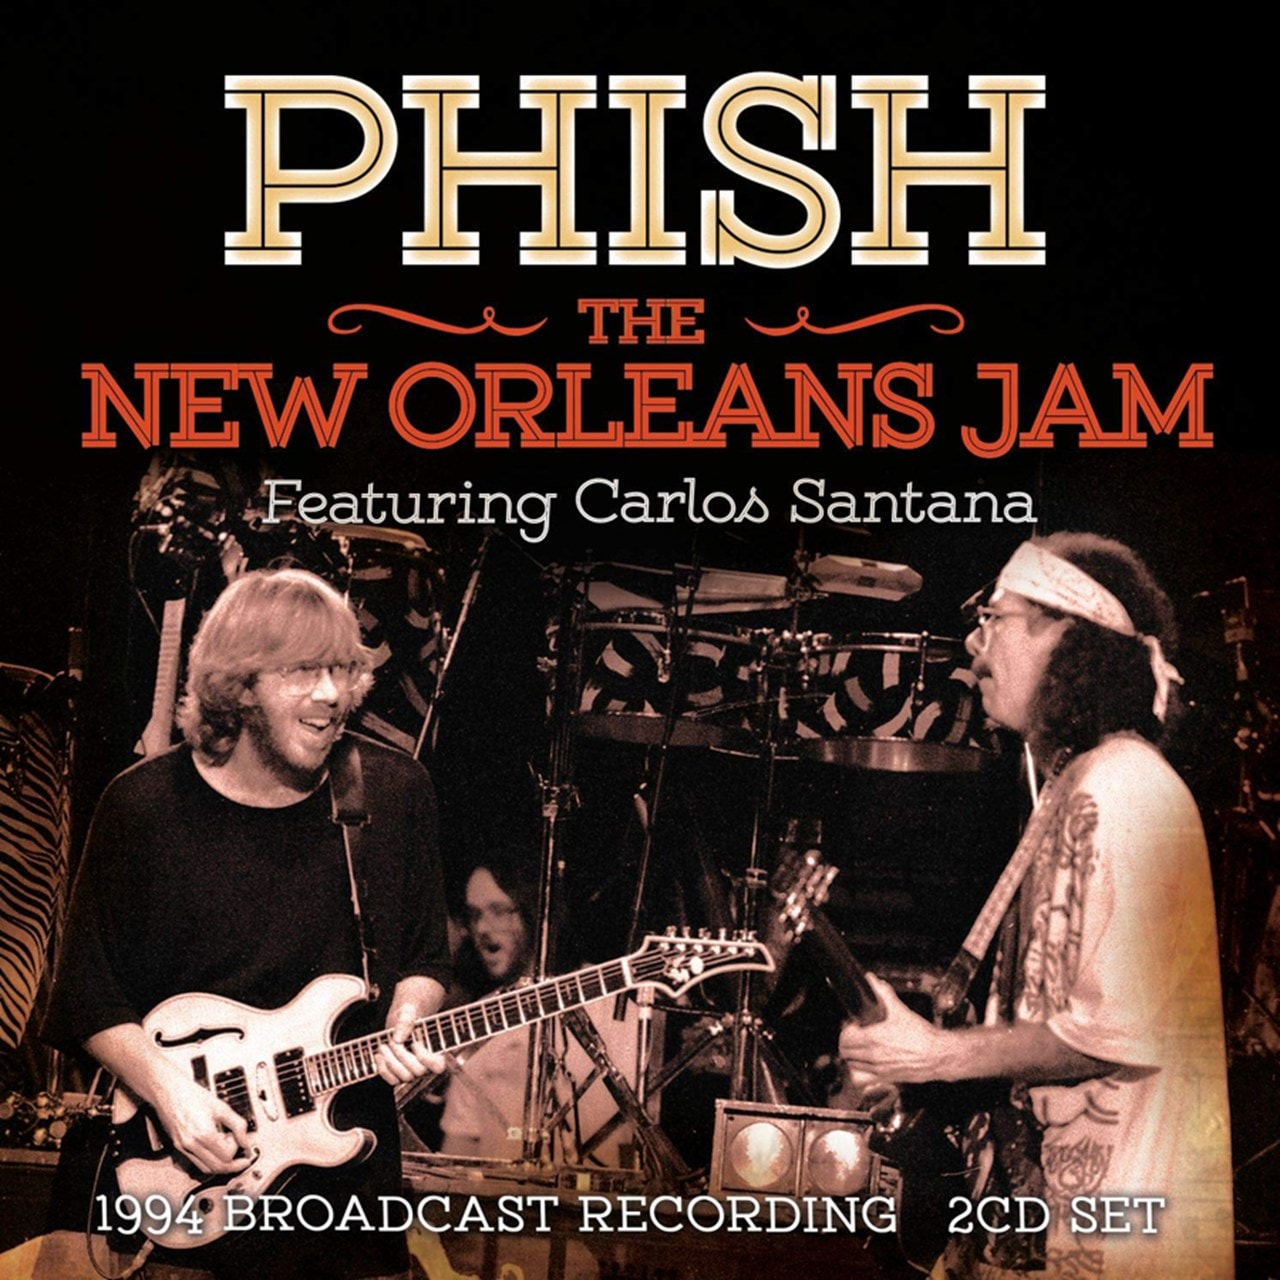 The New Orleans Jam - 1